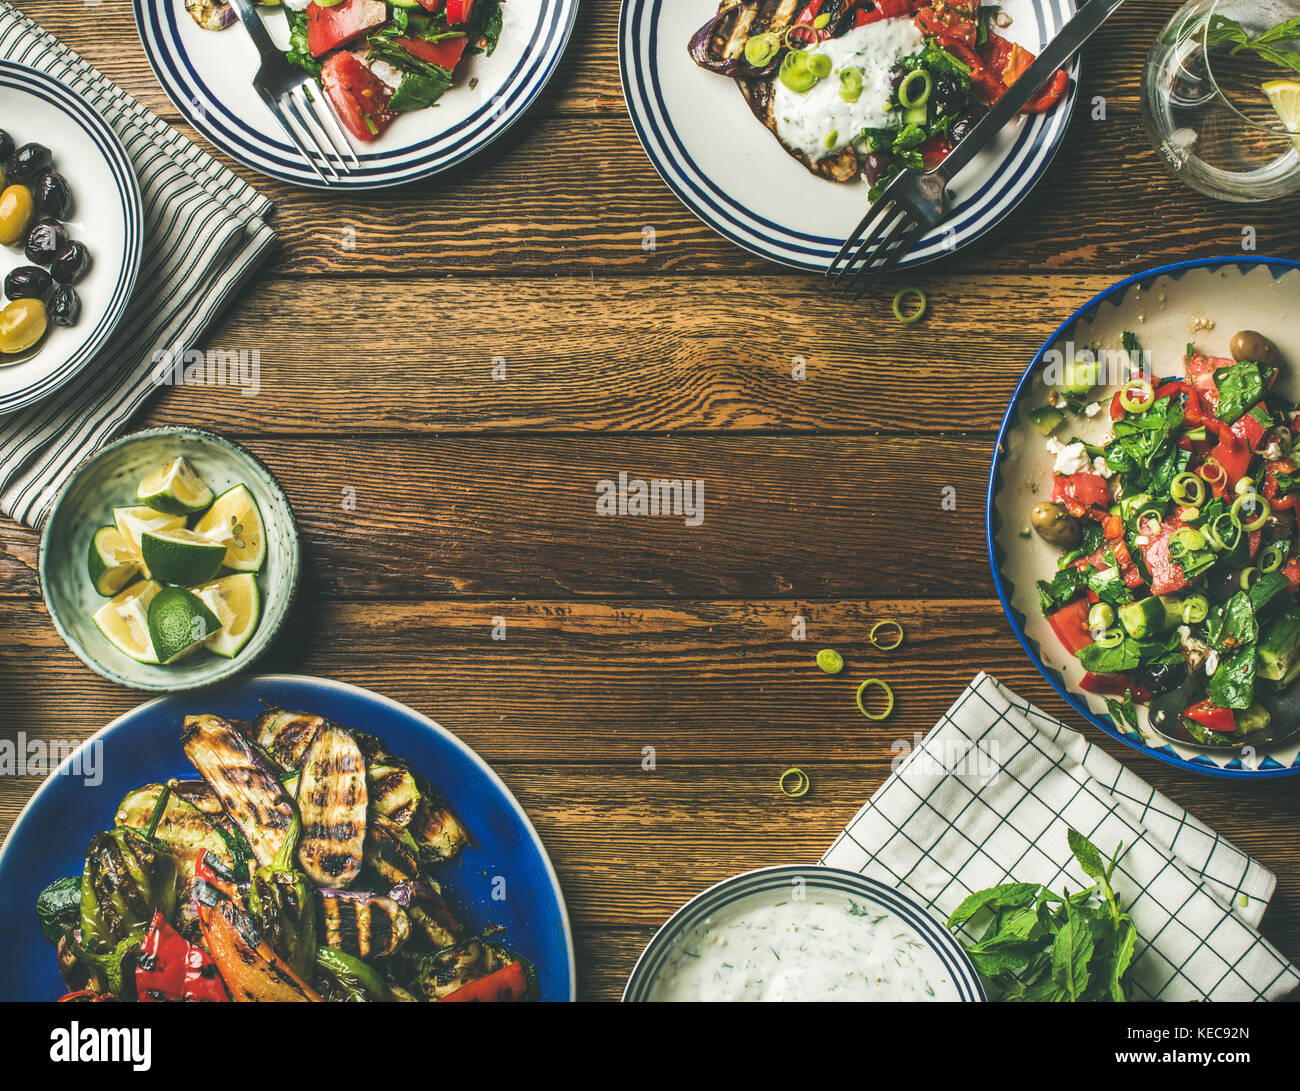 Flat-lay of healthy dinner table setting with vegetarian snacks - Stock Image